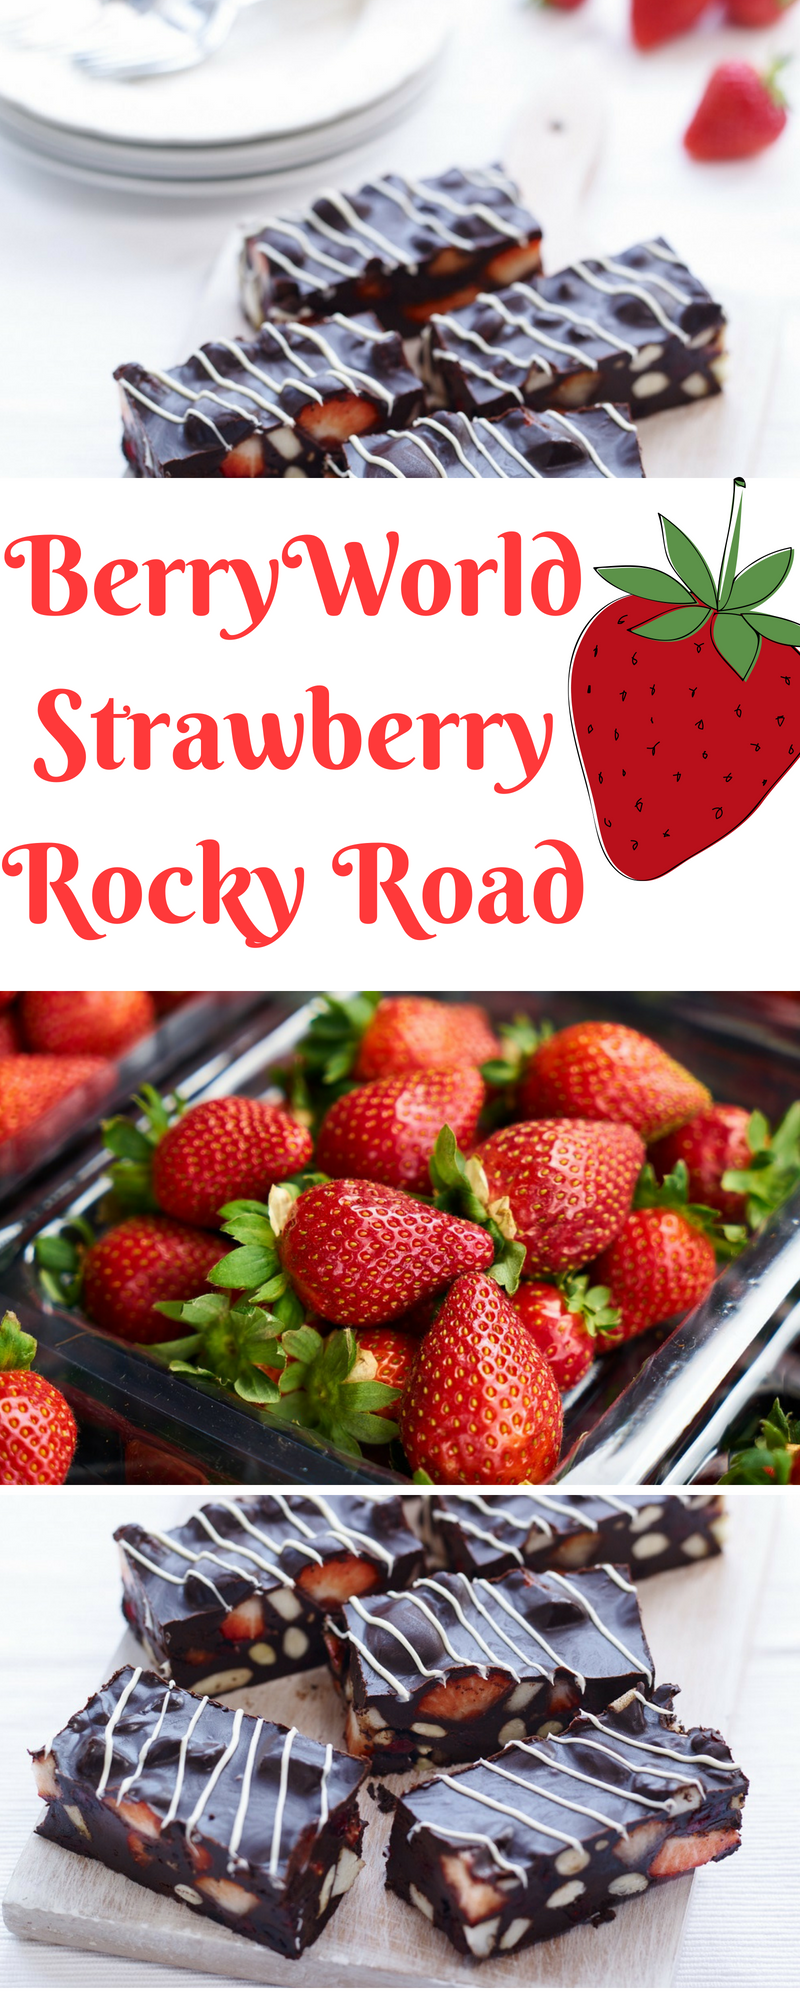 BerryWorld Strawberry Rocky Road